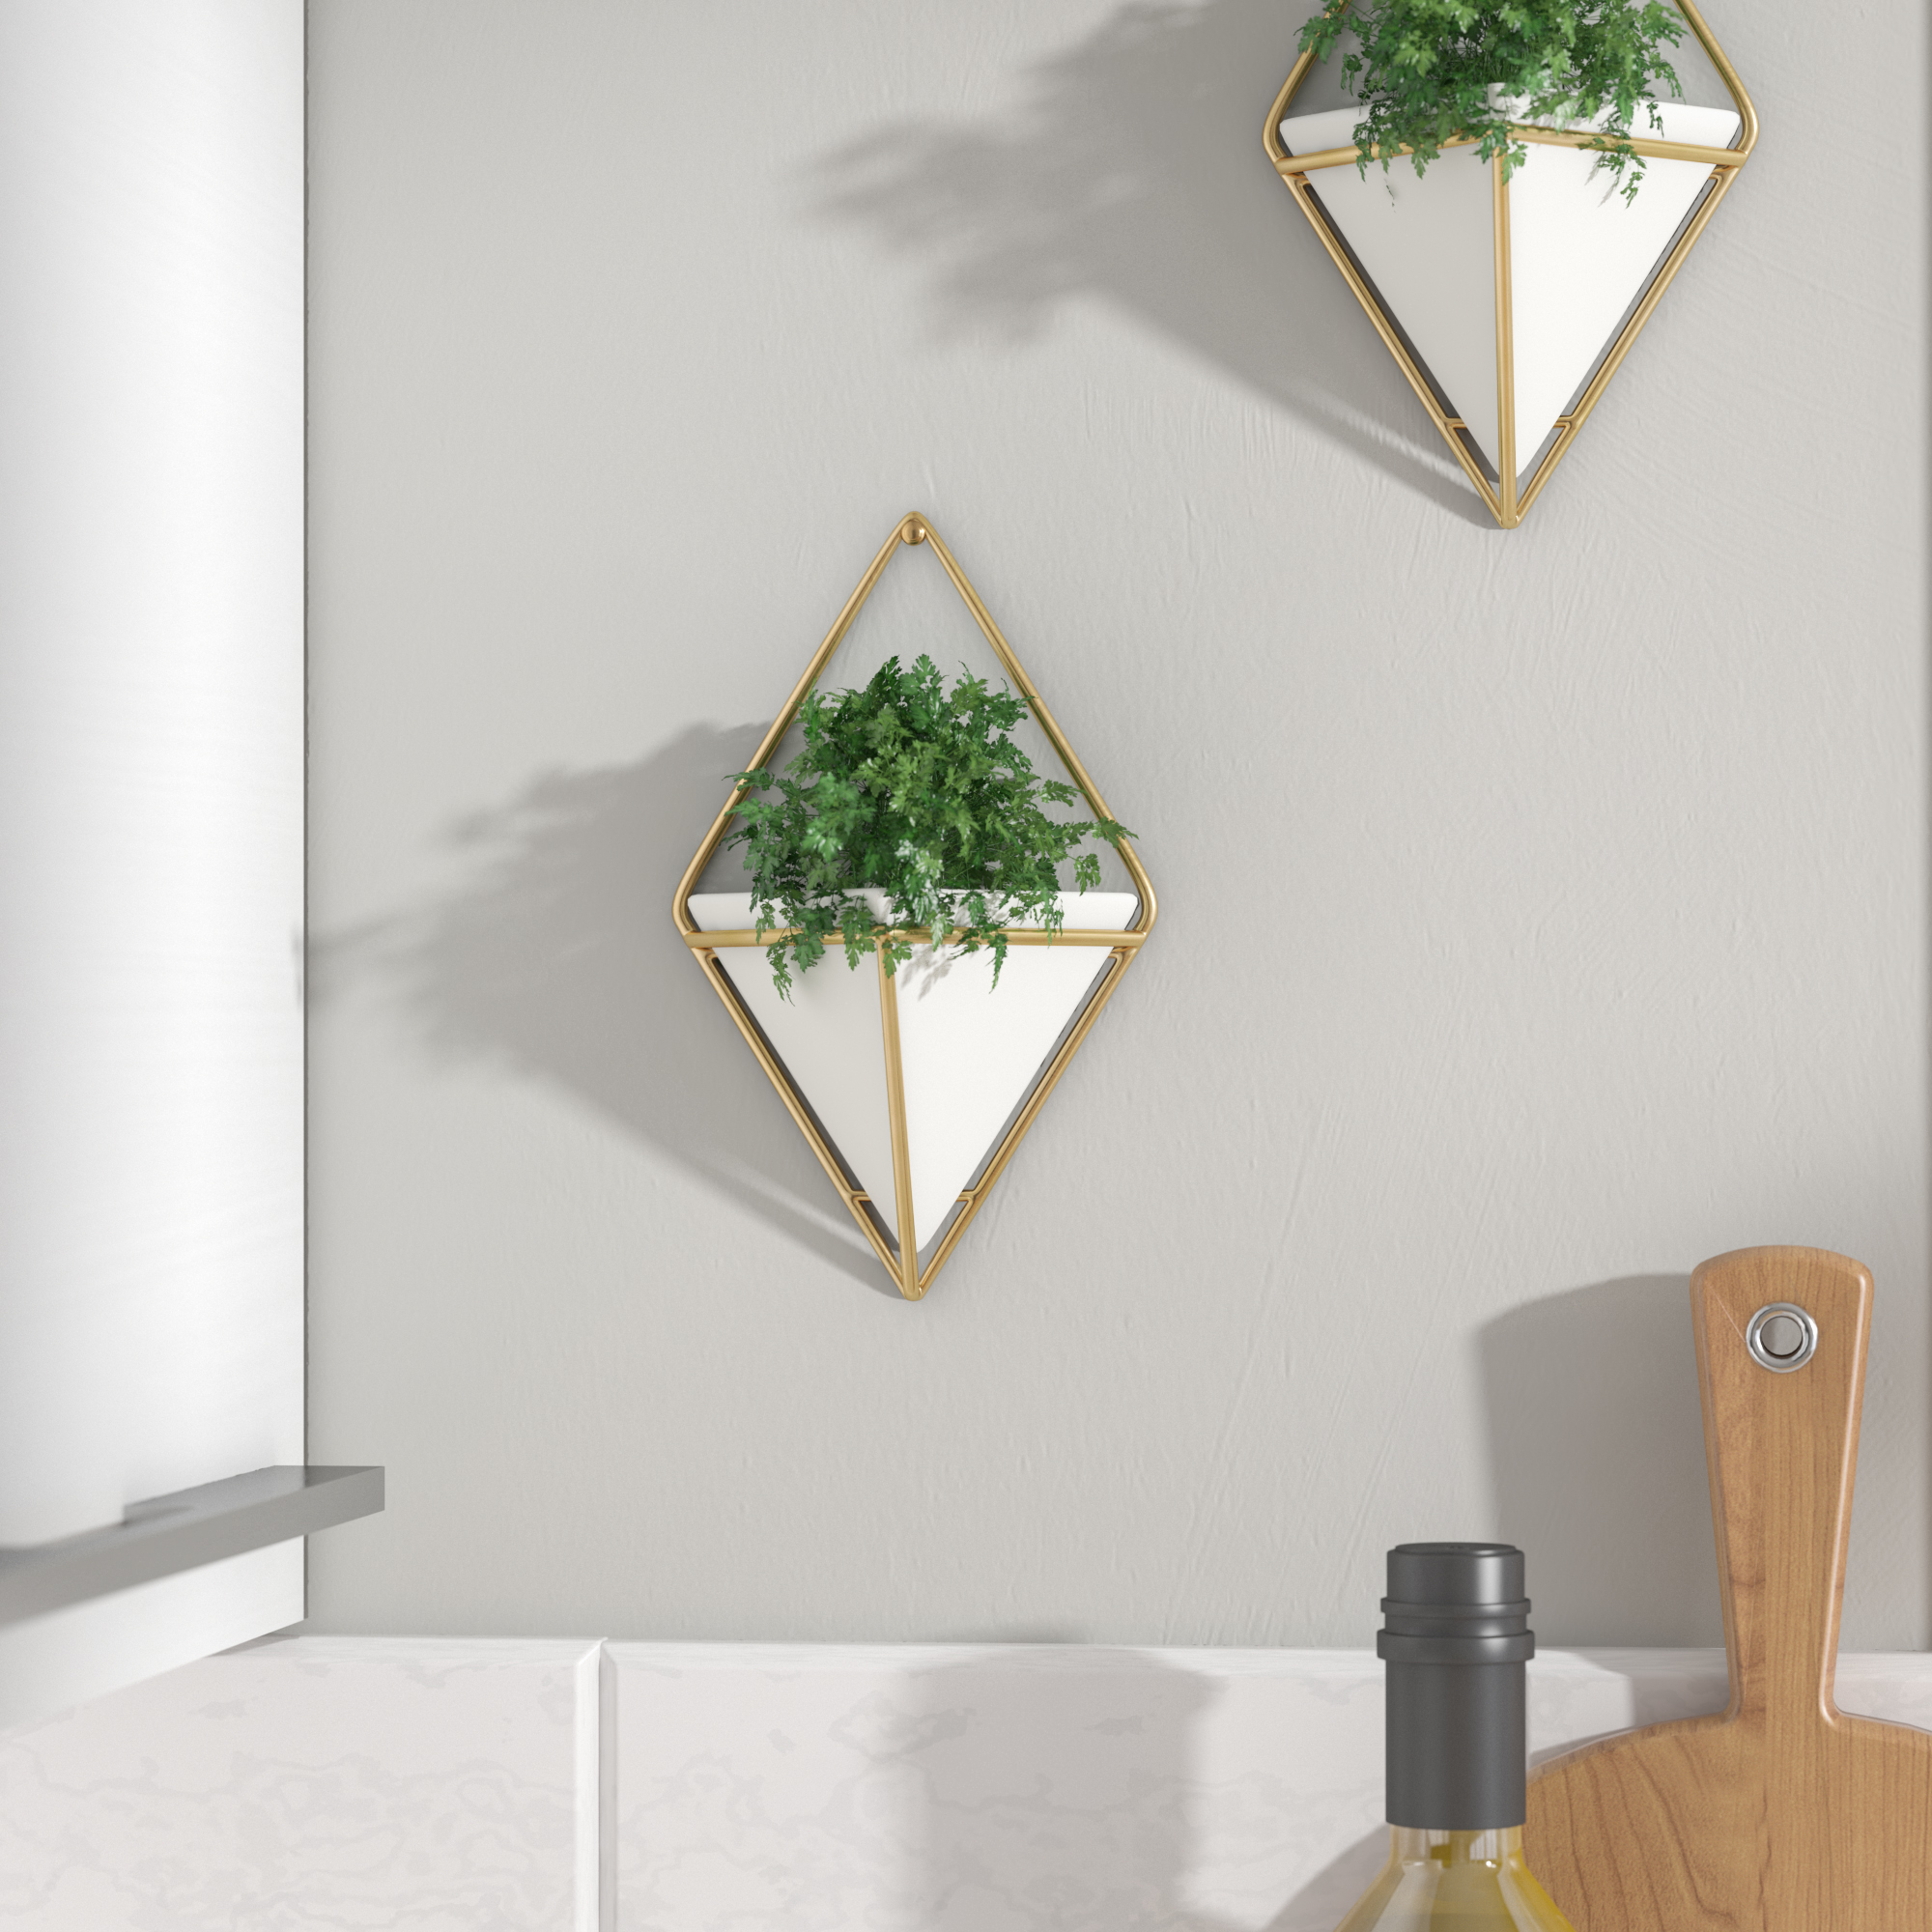 Modern Home Décor | Allmodern pertaining to 2 Piece Trigg Wall Decor Sets (Set of 2) (Image 11 of 30)